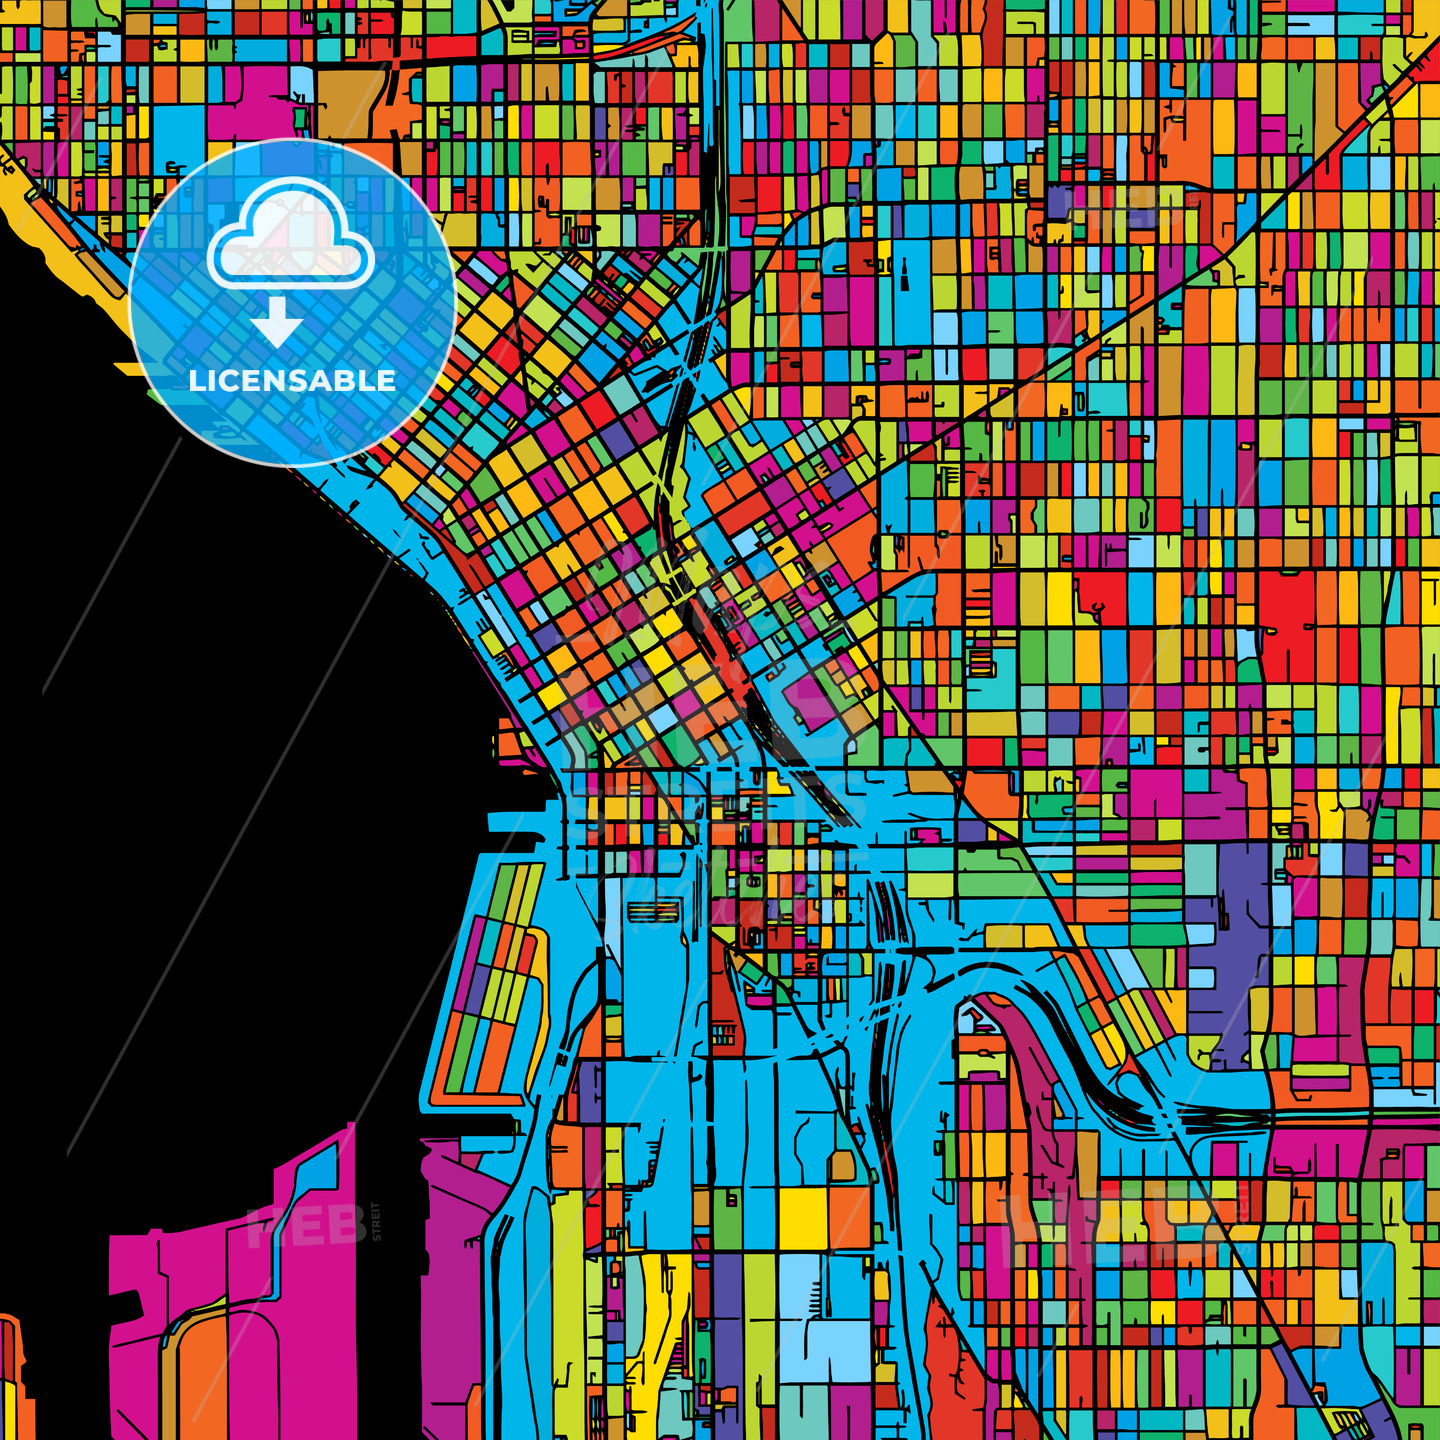 Seattle, Washington, USA, Colorful Vector Map on Black - Hebstreits